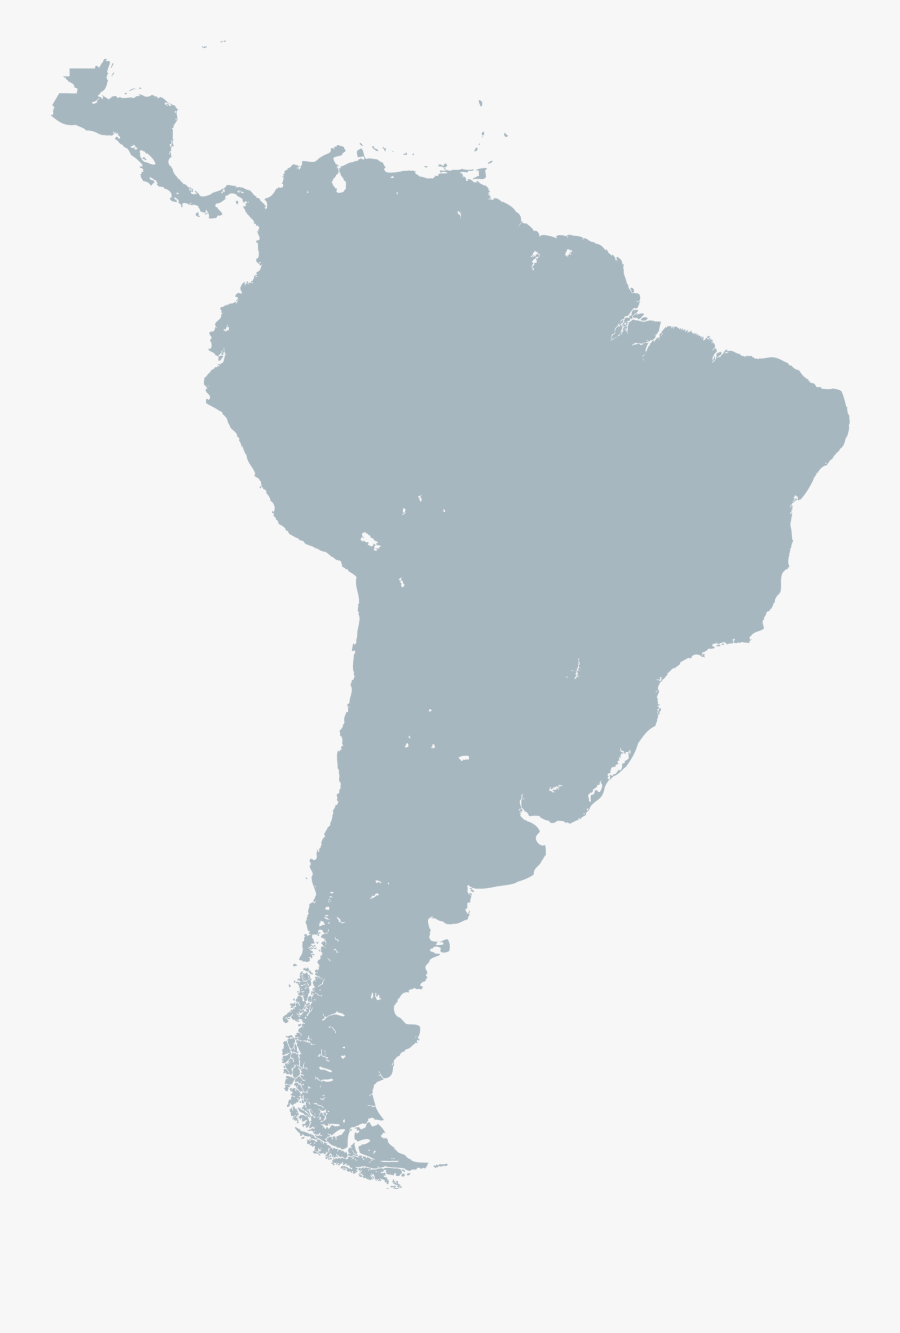 South America Map Png, Transparent Clipart